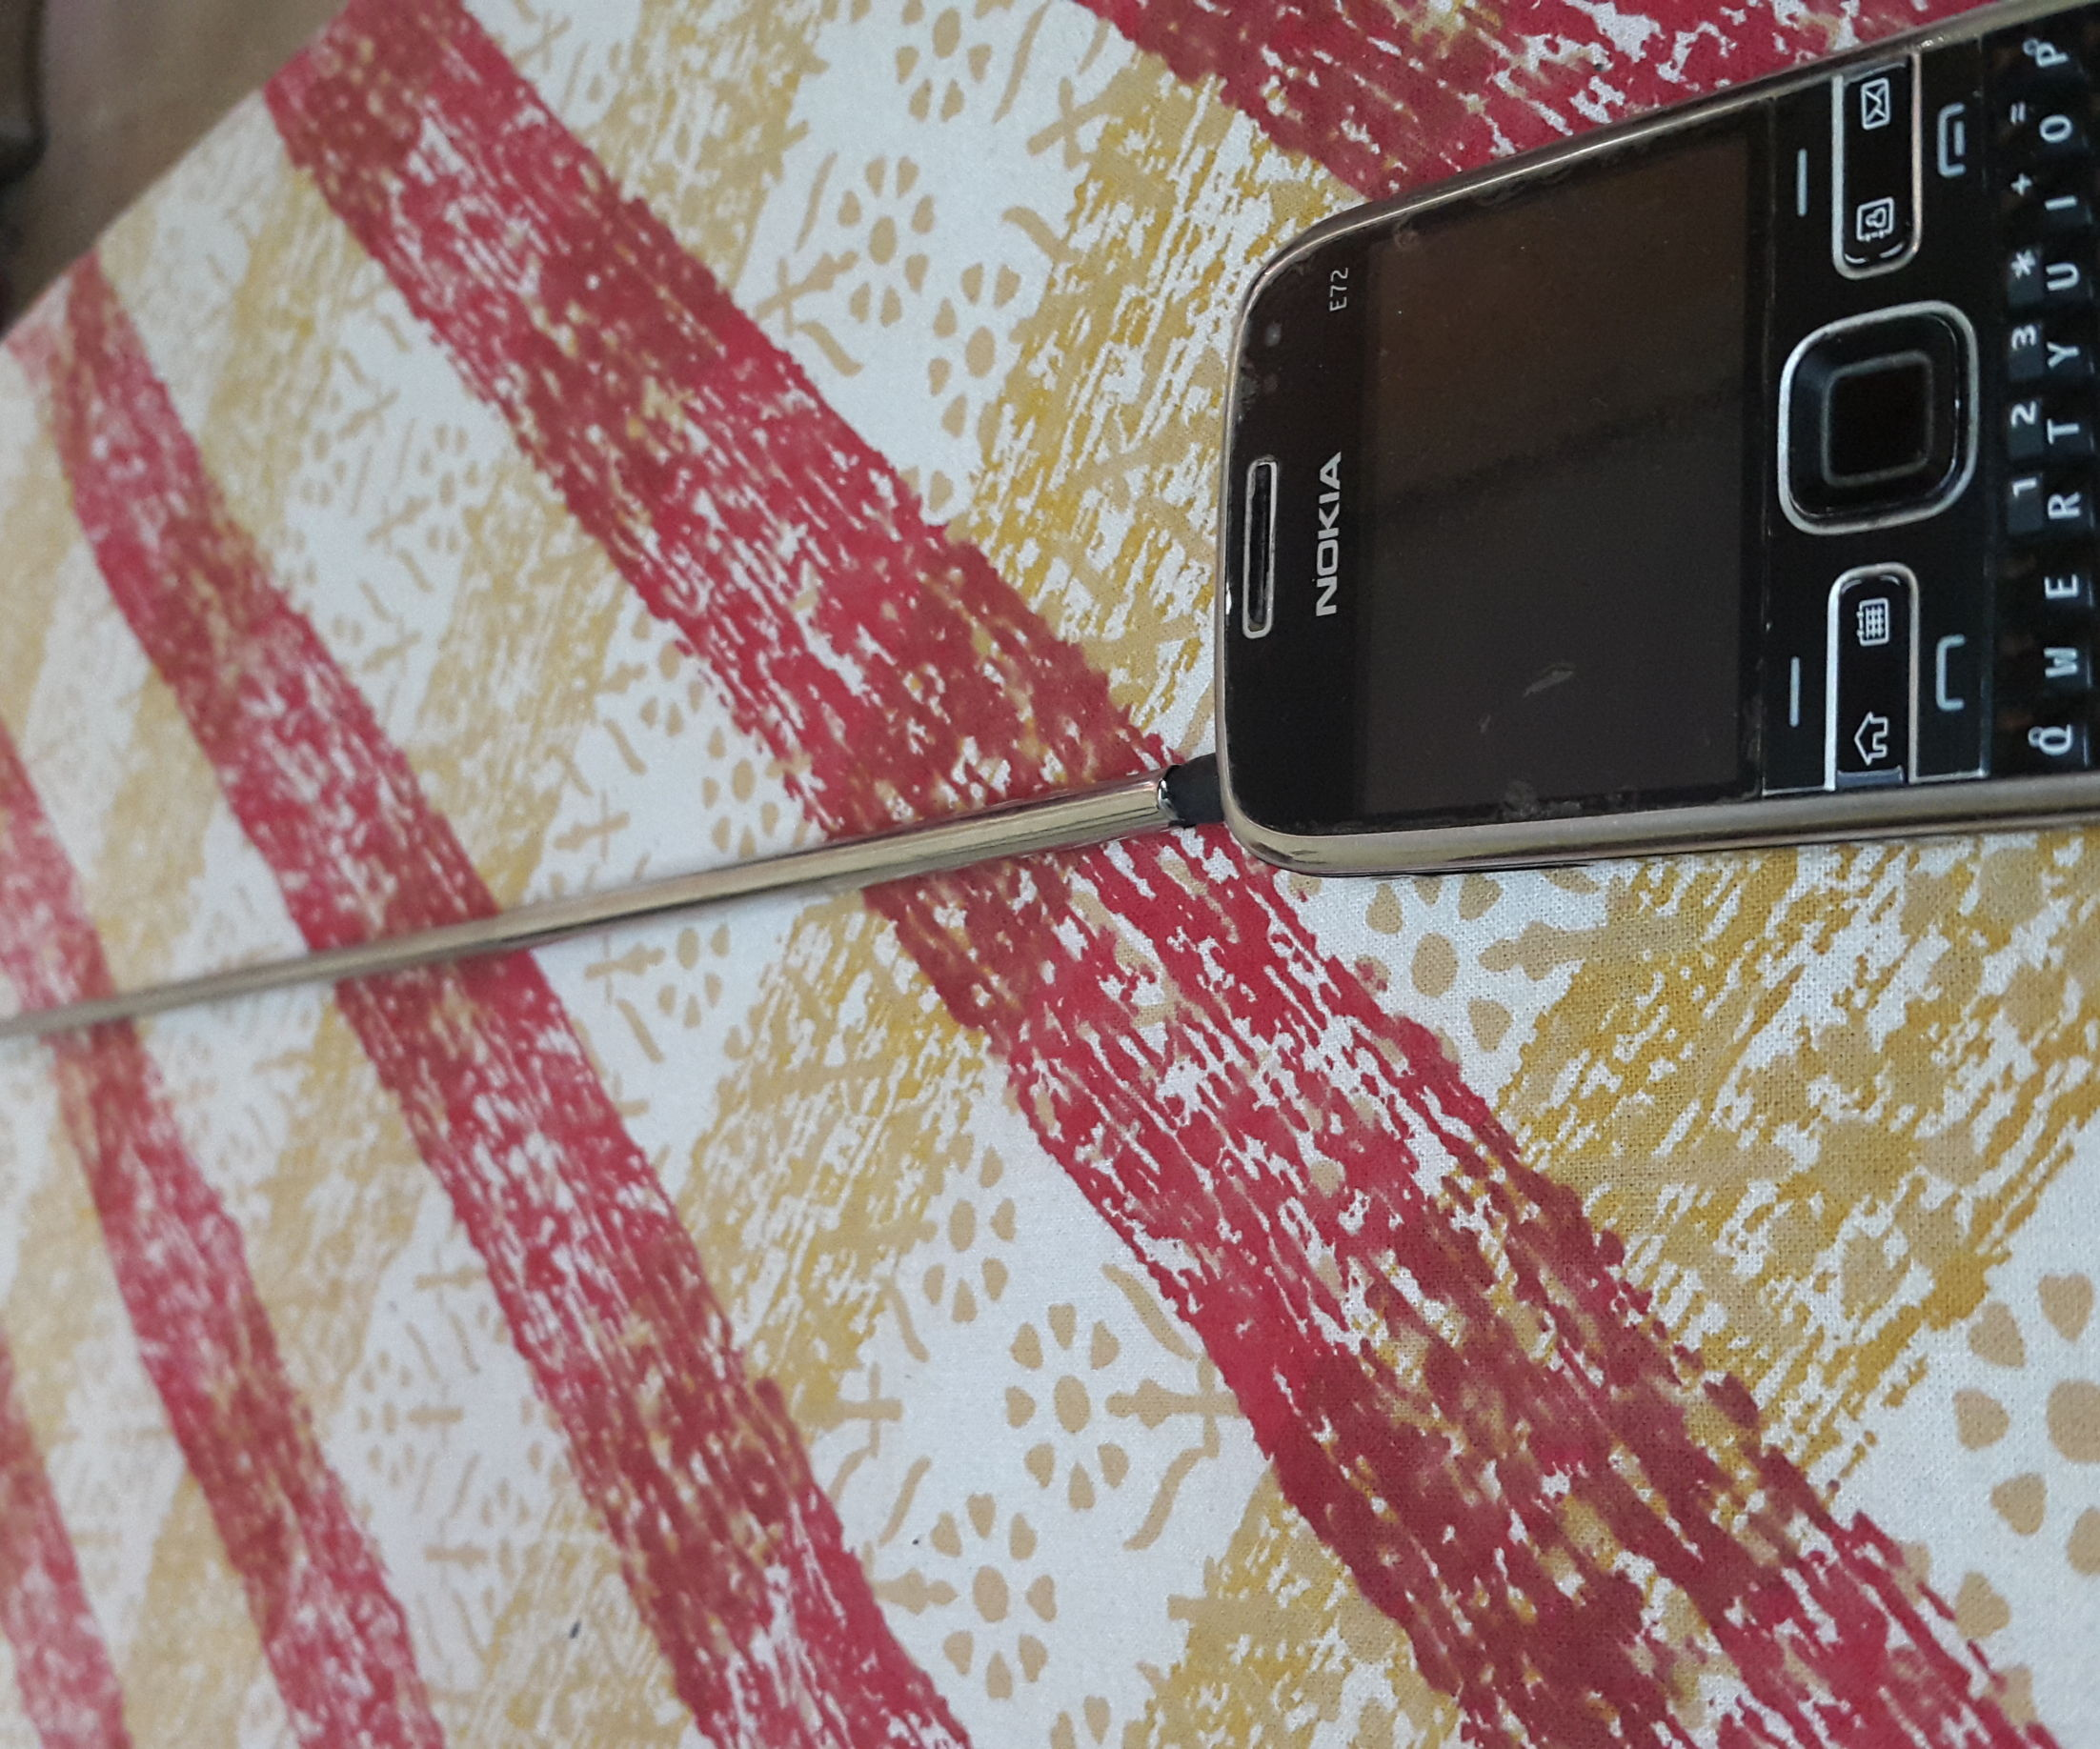 Make a Mobile Antenna to Listen to FM Radio without Headphones